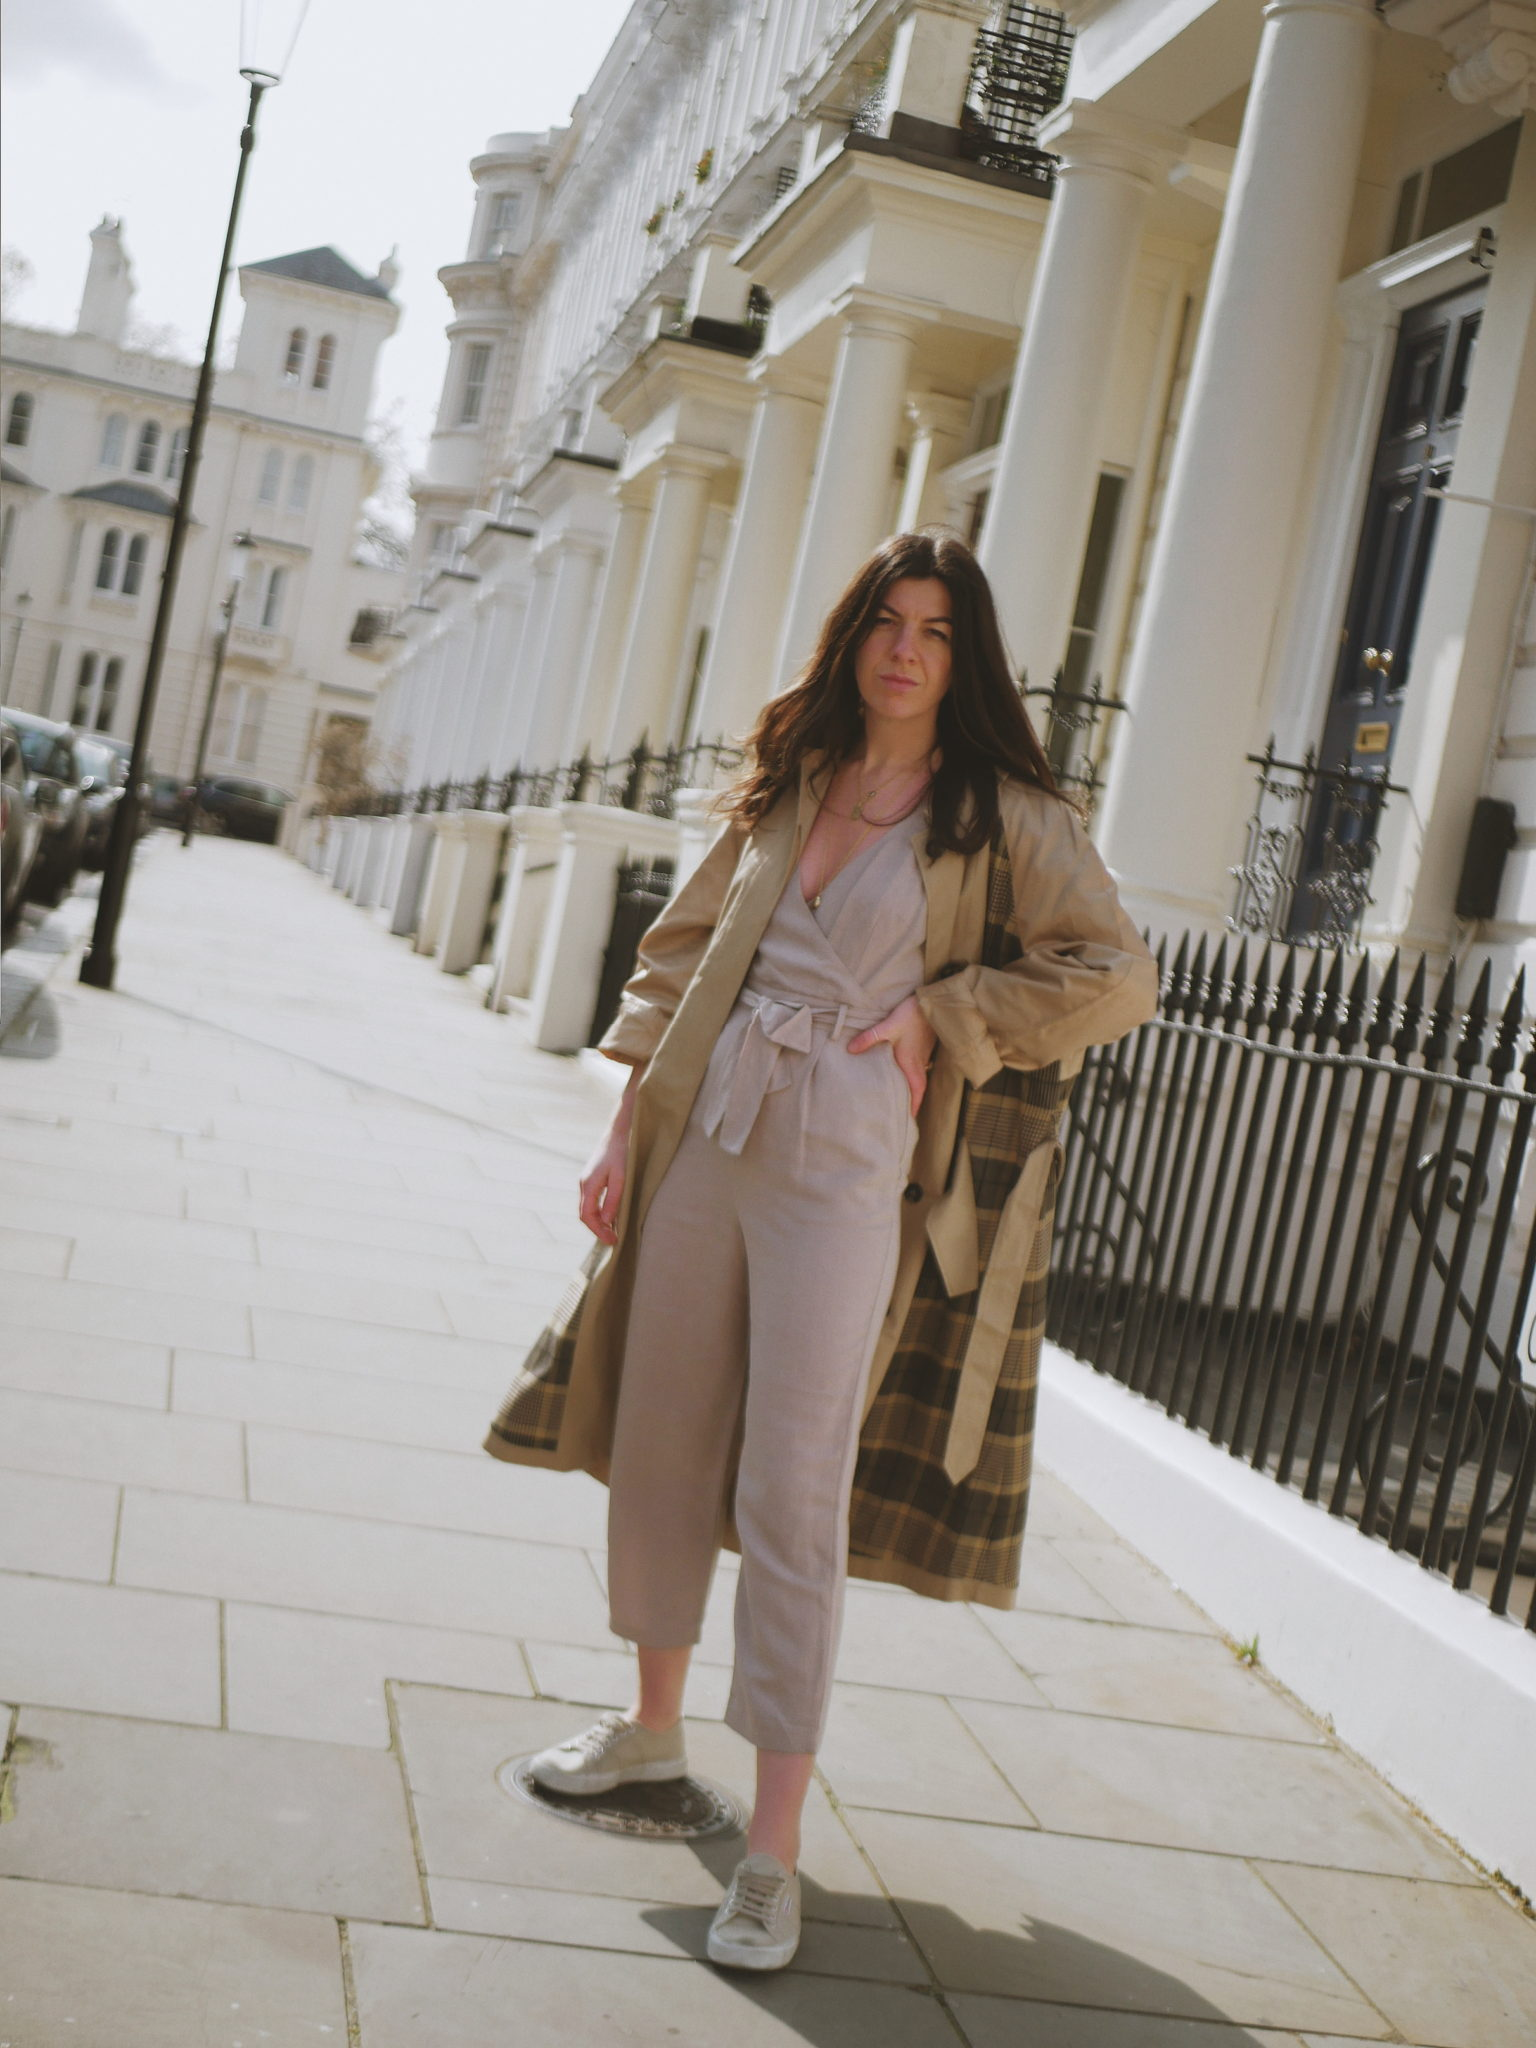 """<a href = """"https://www.frenchconnection.com/product/70laa/anais-check-belted-trench.htm?search_keywords=trench""""><u>Anais Trench</u></a><br/> <a href= """"https://www.frenchconnection.com/product/7glat/briella-linen-blend-jumpsuit.htm?search_keywords=linen%20jumpsuit""""><u>Briella Linen Jumpsuit</u></a><br/>"""